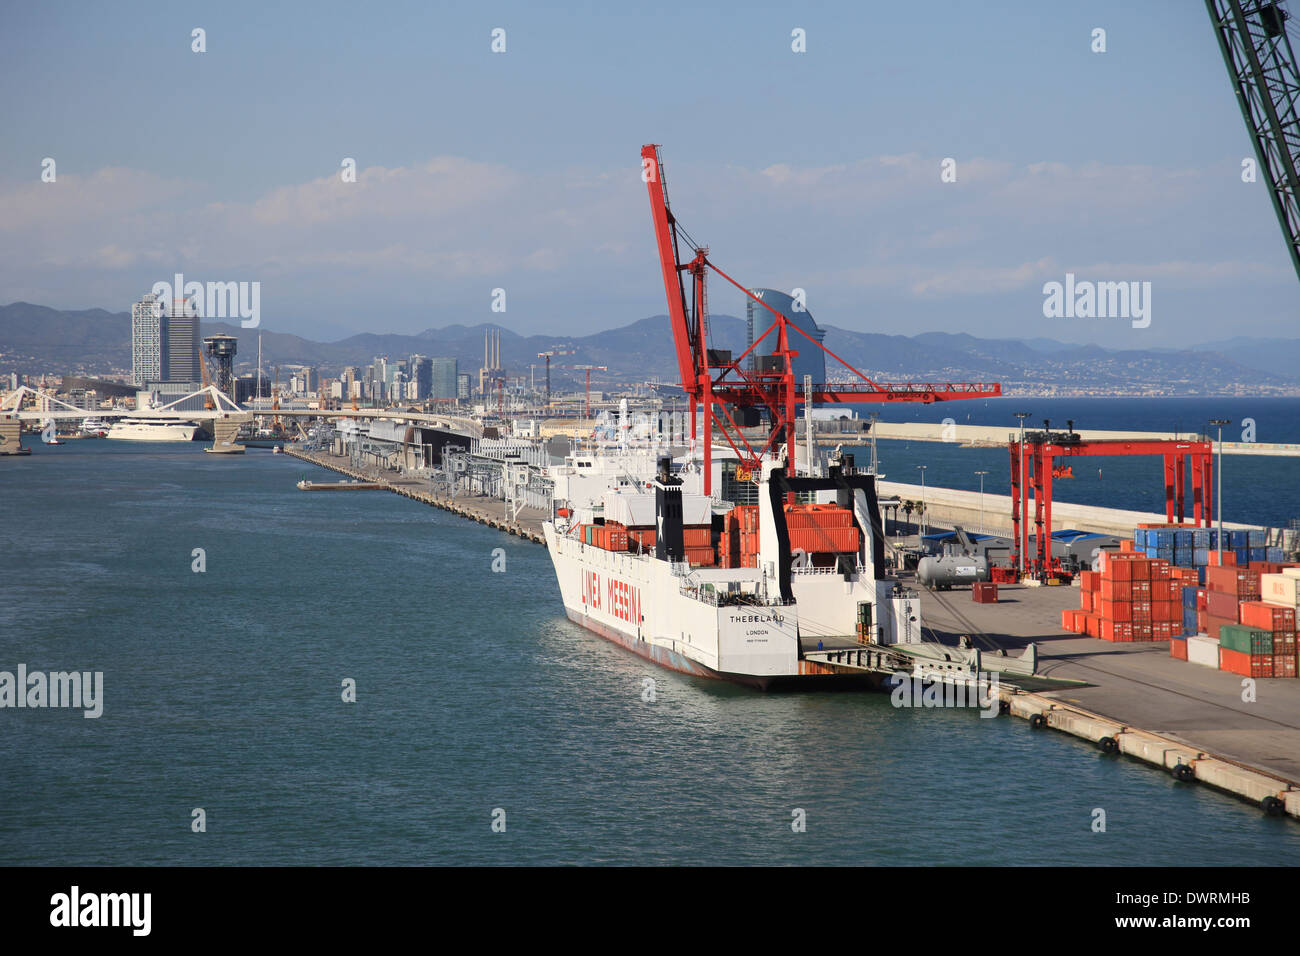 Ro-Ro container ship mv Thebeland berthed at Barcelona harbor Spain - Stock Image